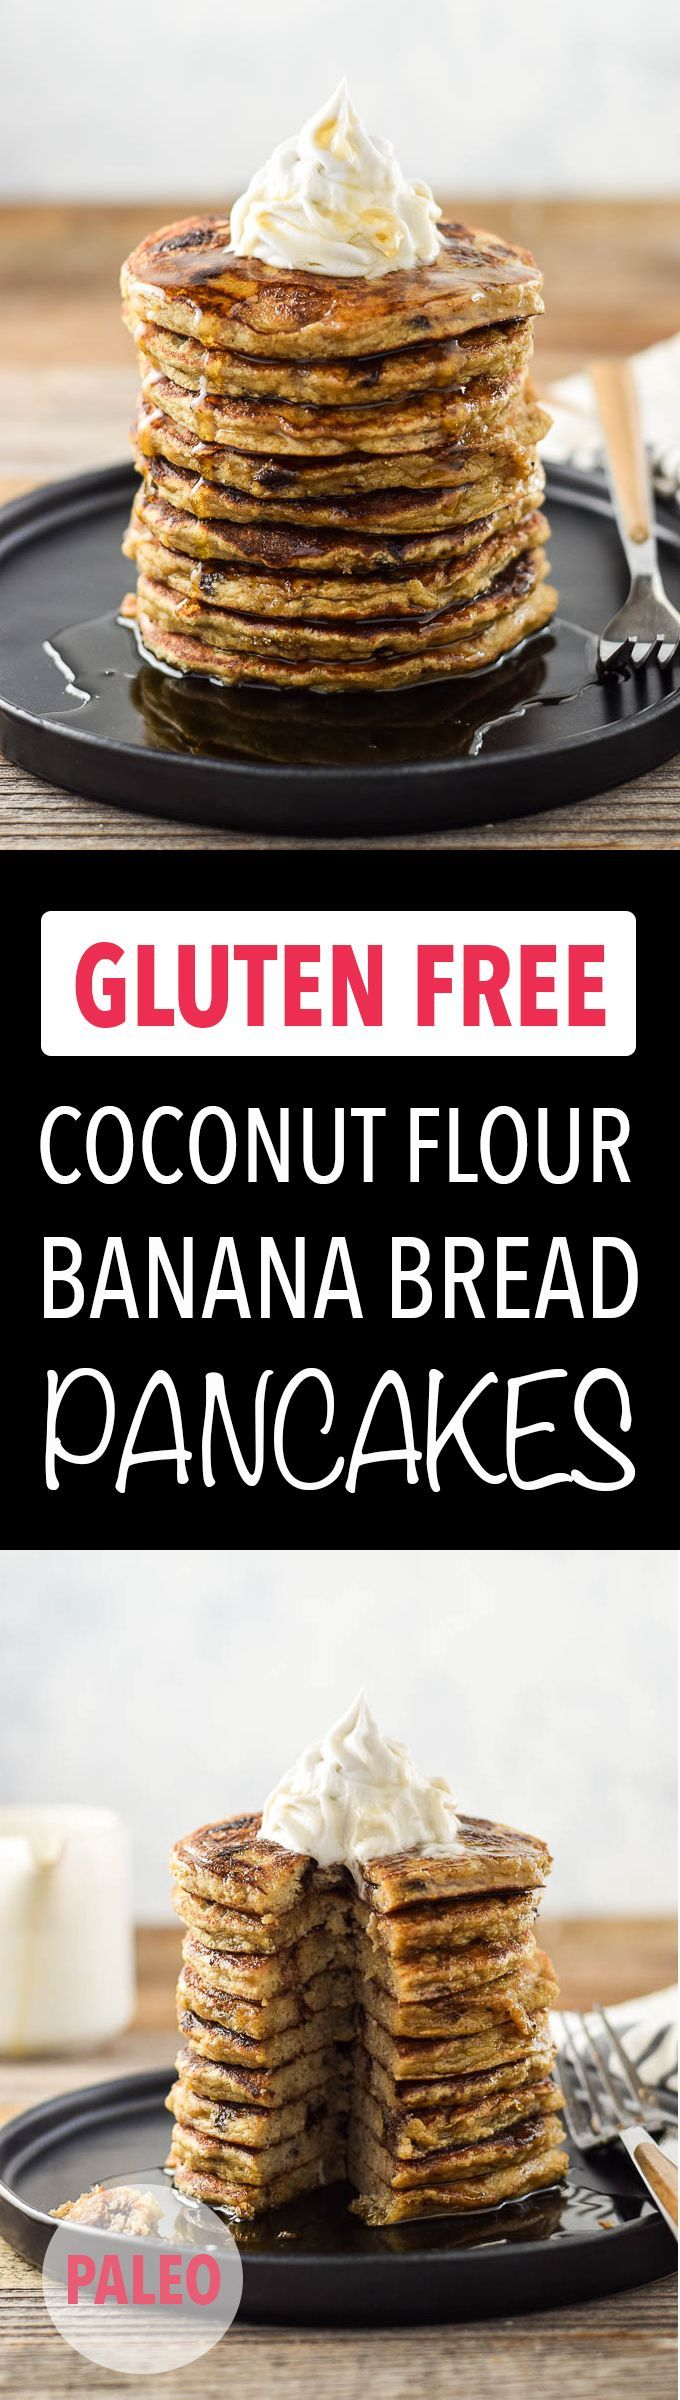 Easy & healthy banana bread pancakes are made with coconut flour and ZERO added sweeteners! GF, DF, Paleo, Sugar Free.